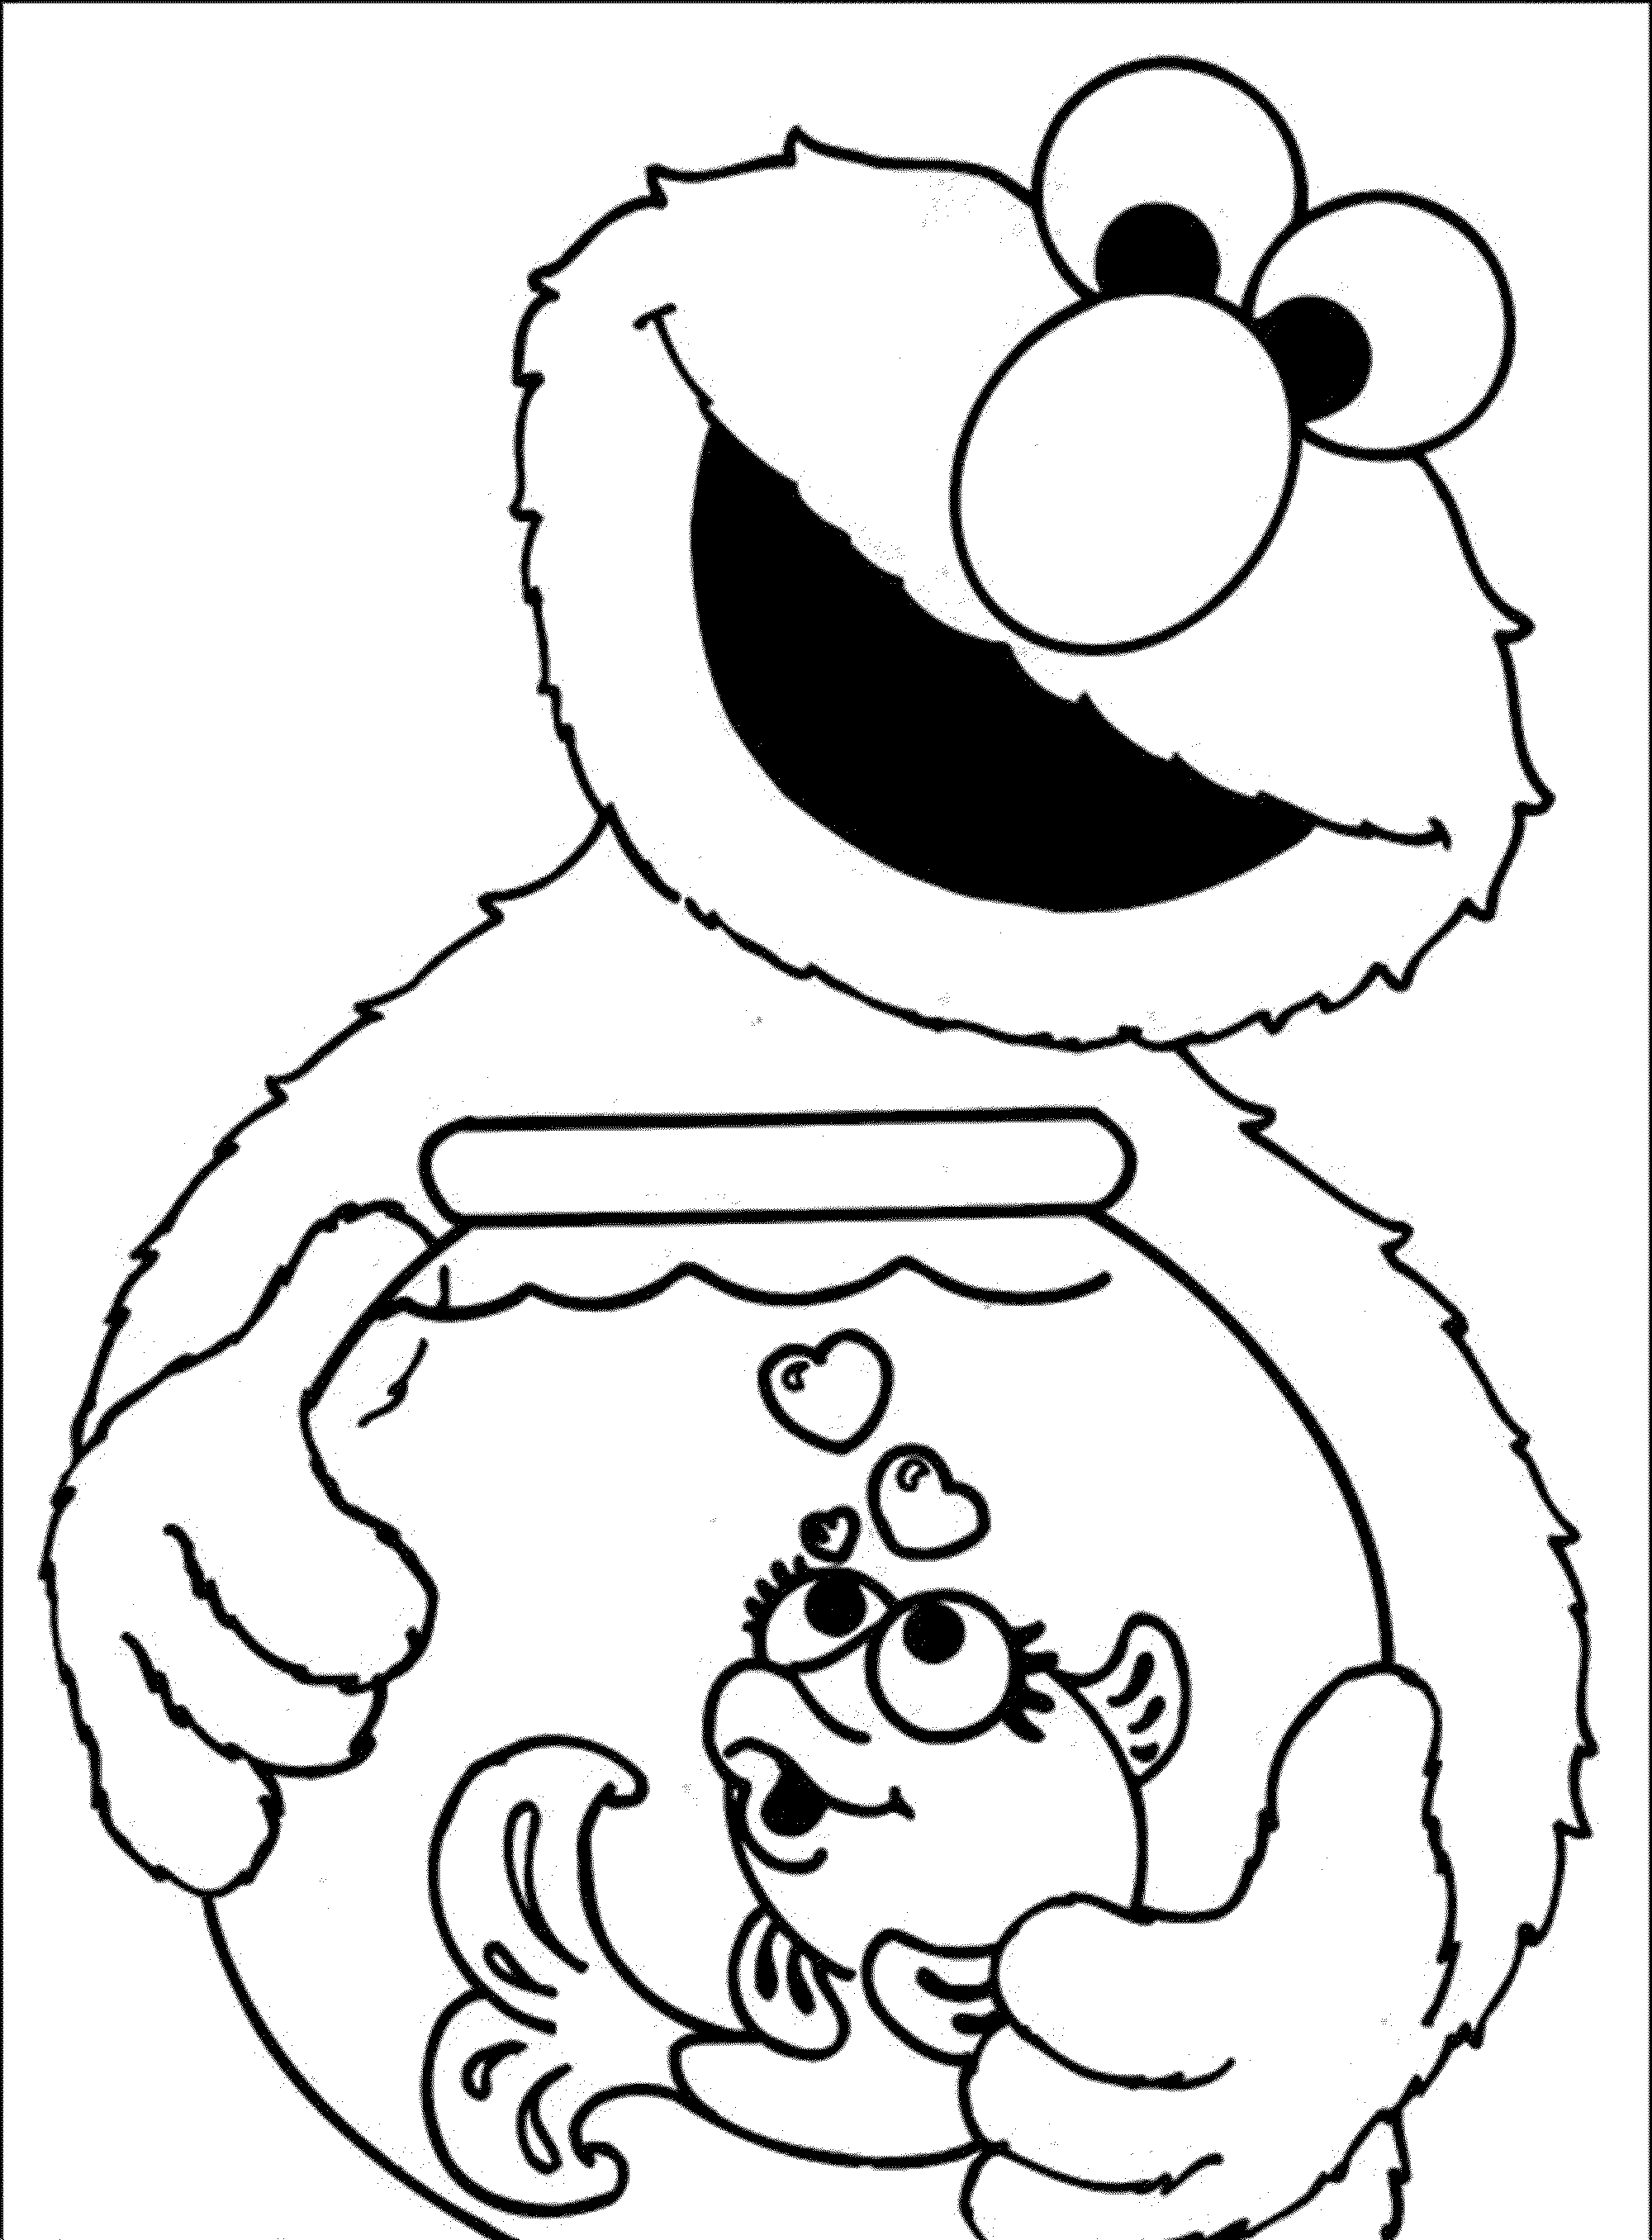 printable elmo pictures print download elmo coloring pages for childrens home elmo pictures printable